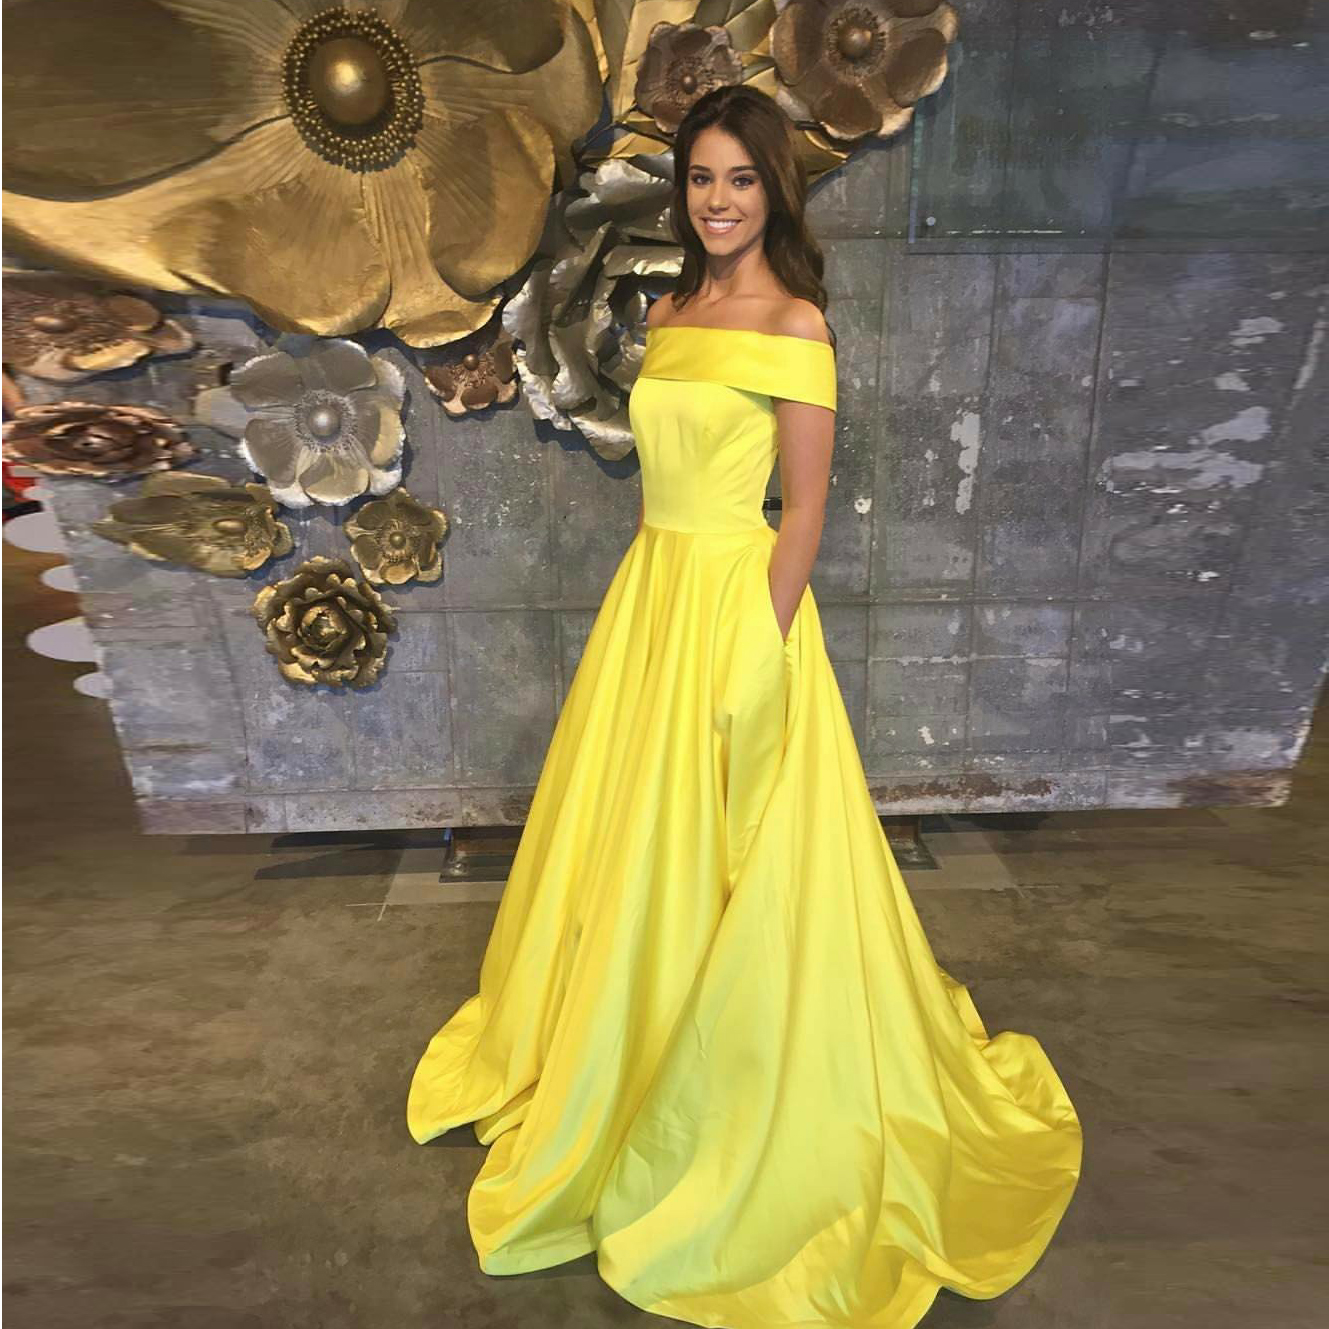 48cb4d1d5bca 2018 Plus Size Yellow Satin Prom Dresses Off Shoulder Formal Party Dresses  A Line Arabic Long Evening Dress Yellow Wedding Party Gowns